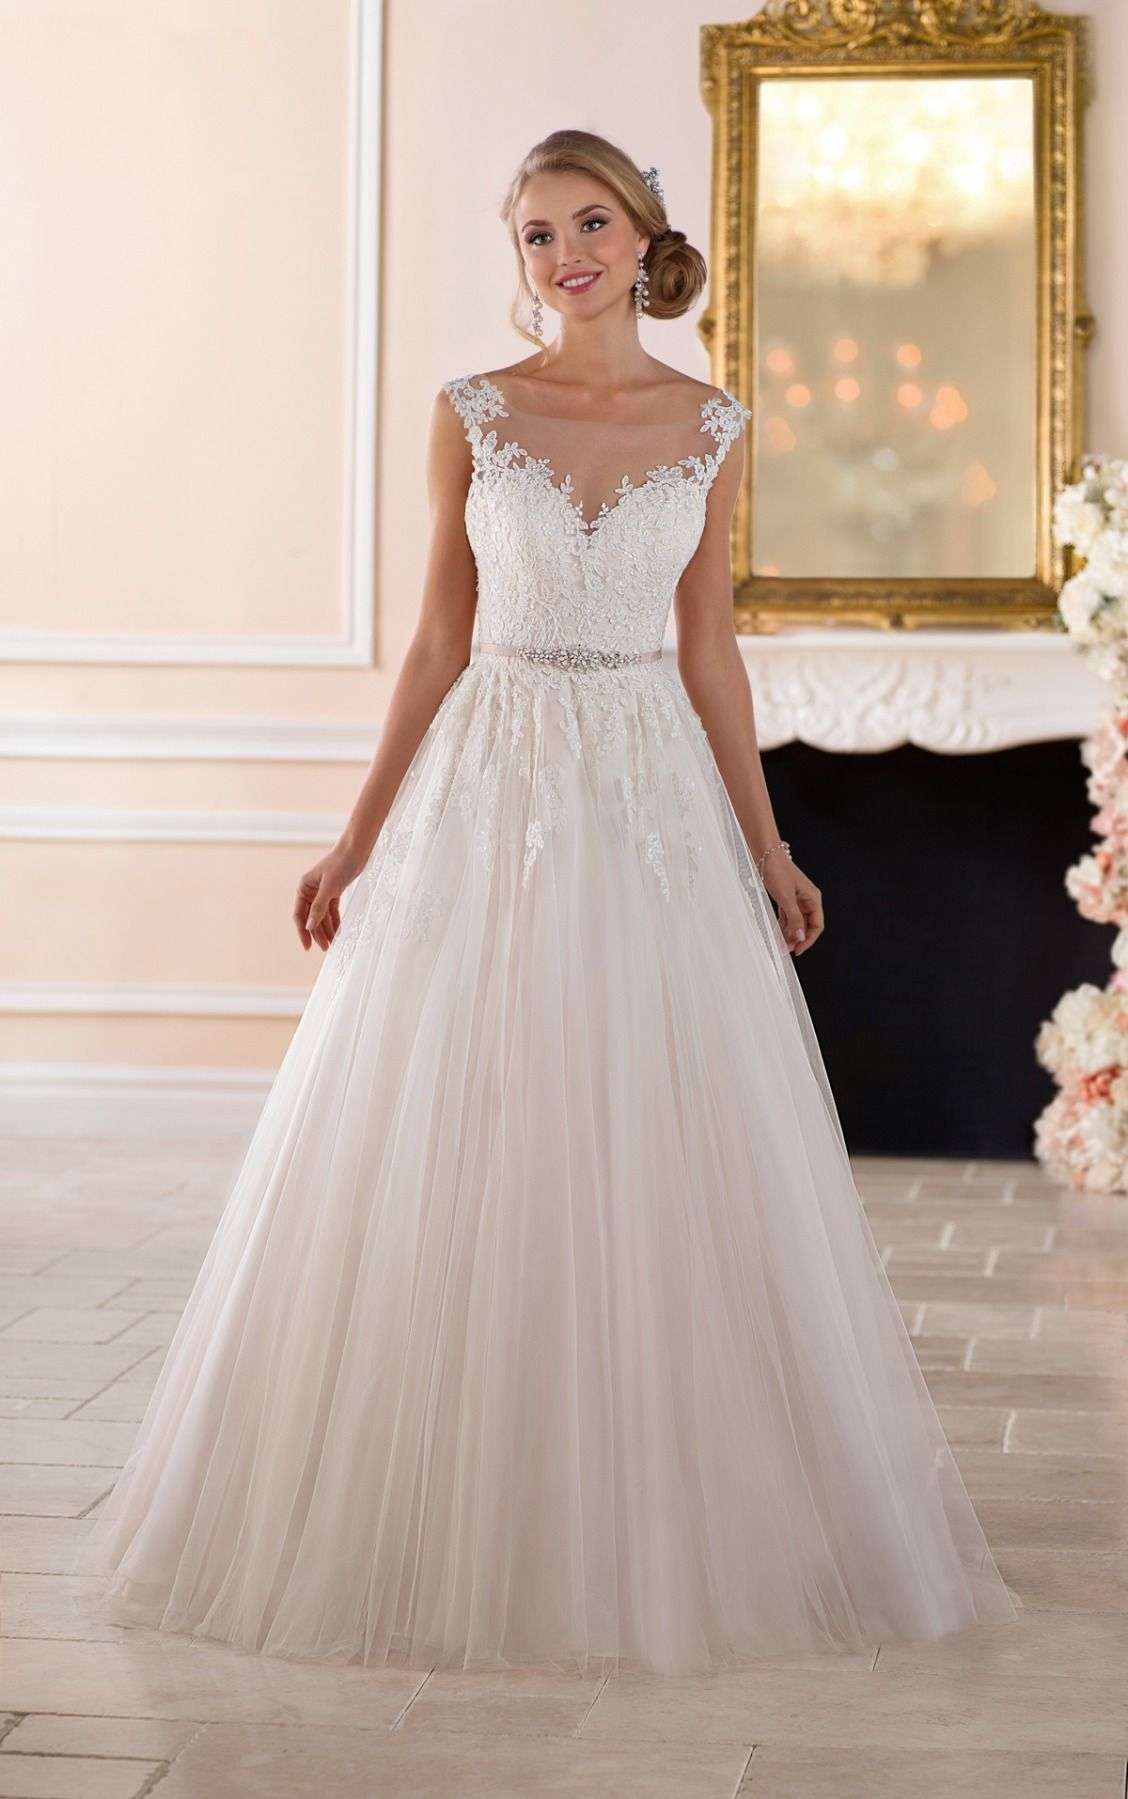 This romantic ball gown with keyhole back wedding dress by Stella York was made for fairytale moments! From the illusion lace and tulle neckline to the softly flowing train, every detail of this wedding dress evokes a sense of romance. The glittering belt is adorned with moonstone and Diamante beading for just a pop of shimmer. A sweet, illusion lace and tulle keyhole back finish this romantic wedding dress in the most elegant way. This stunning wedding dress is also available in plus sizes.